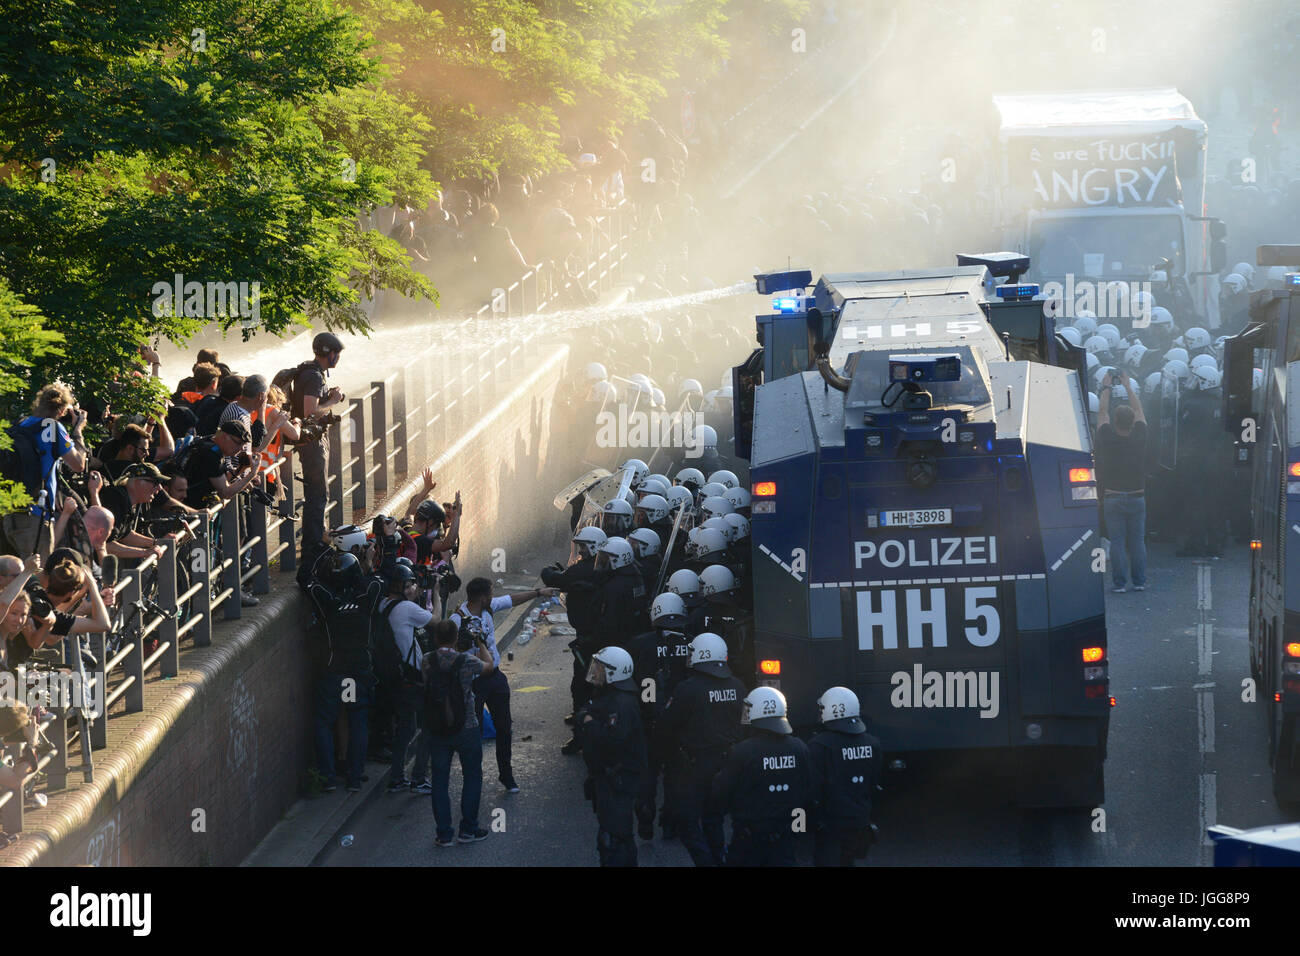 Hamburg, Germany. 6th July, 2017. GERMANY, Hamburg, protest rally 'WELCOME TO HELL' against G-20 summit, - Stock Image